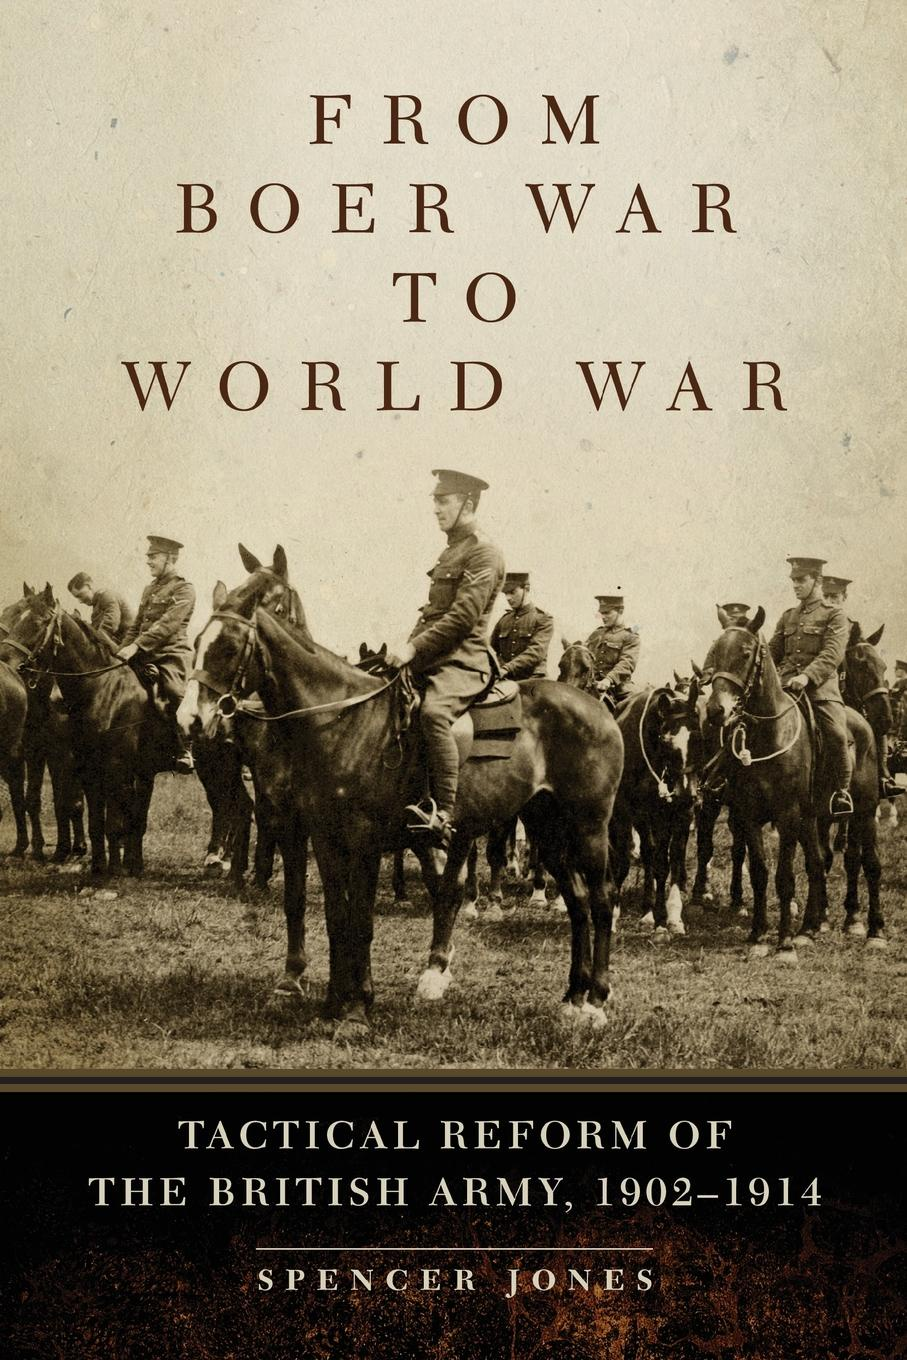 цена на Spencer Jones From Boer War to World War. Tactical Reform of the British Army, 1902-1914